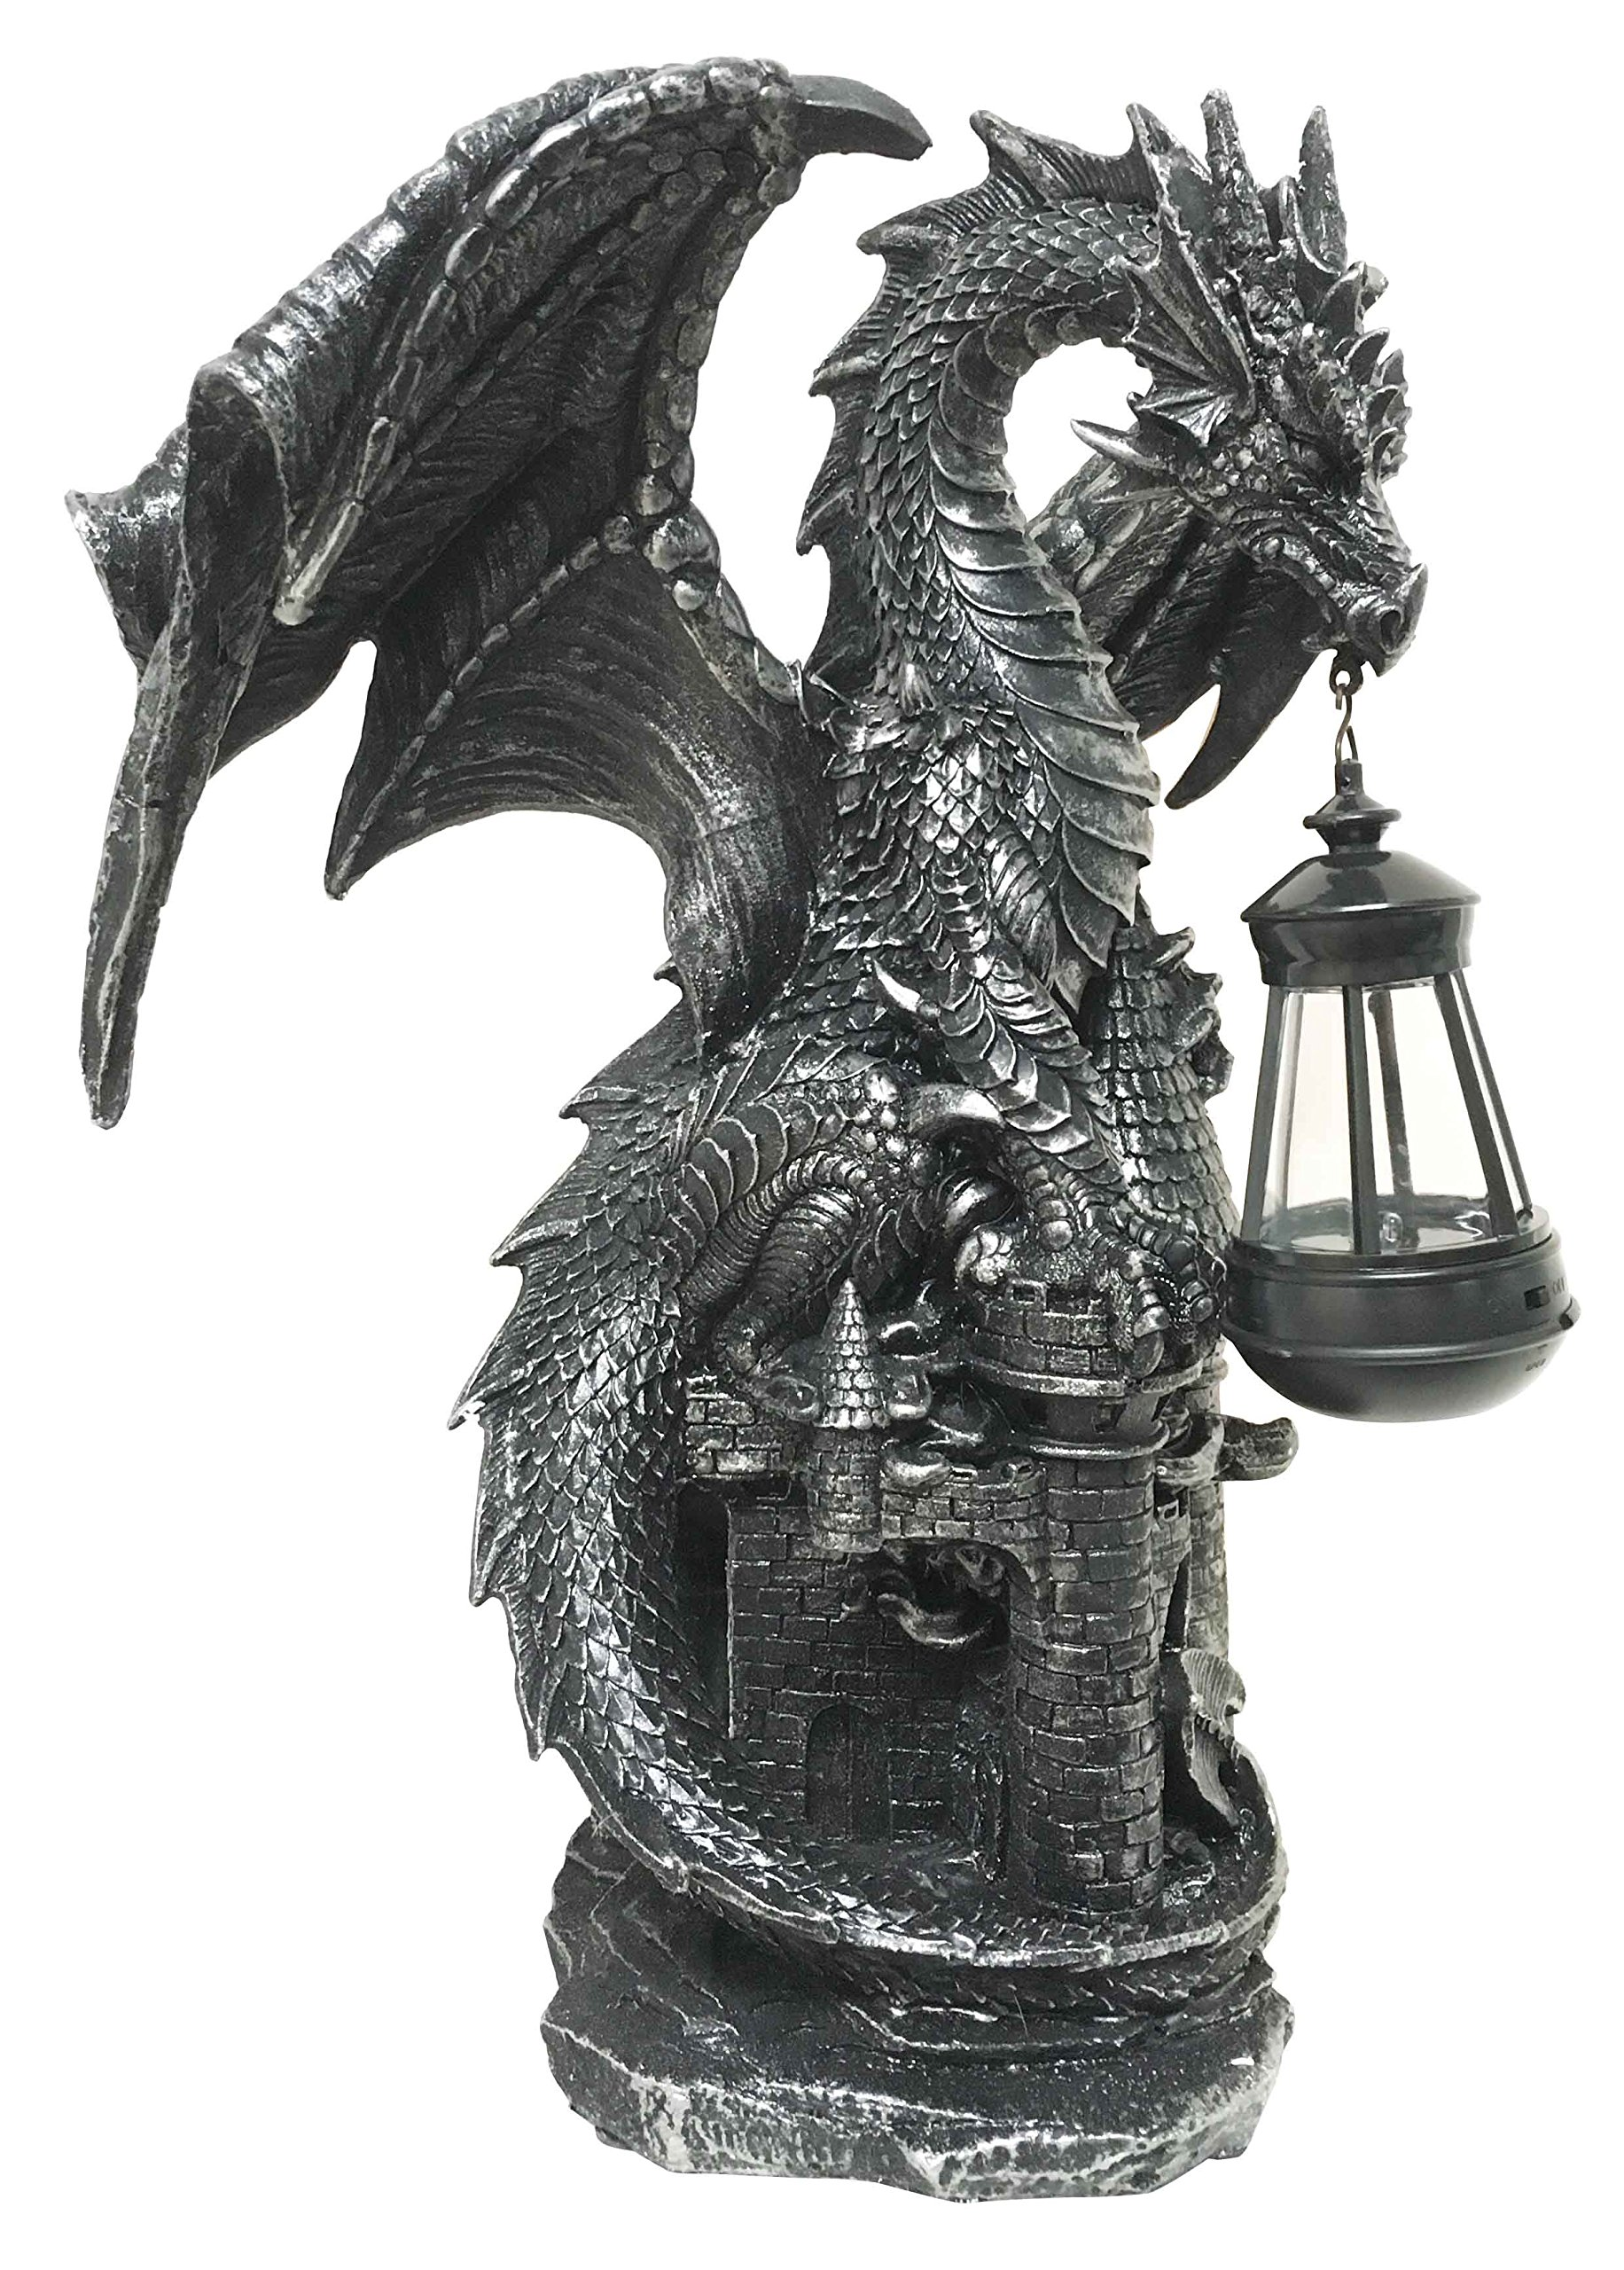 Ferocious Dark Beacon Dragon Guardian of Styx Castle Gate Statue With Solar LED Light Patio Pathways and Indoor Night Light by Ebros Gift